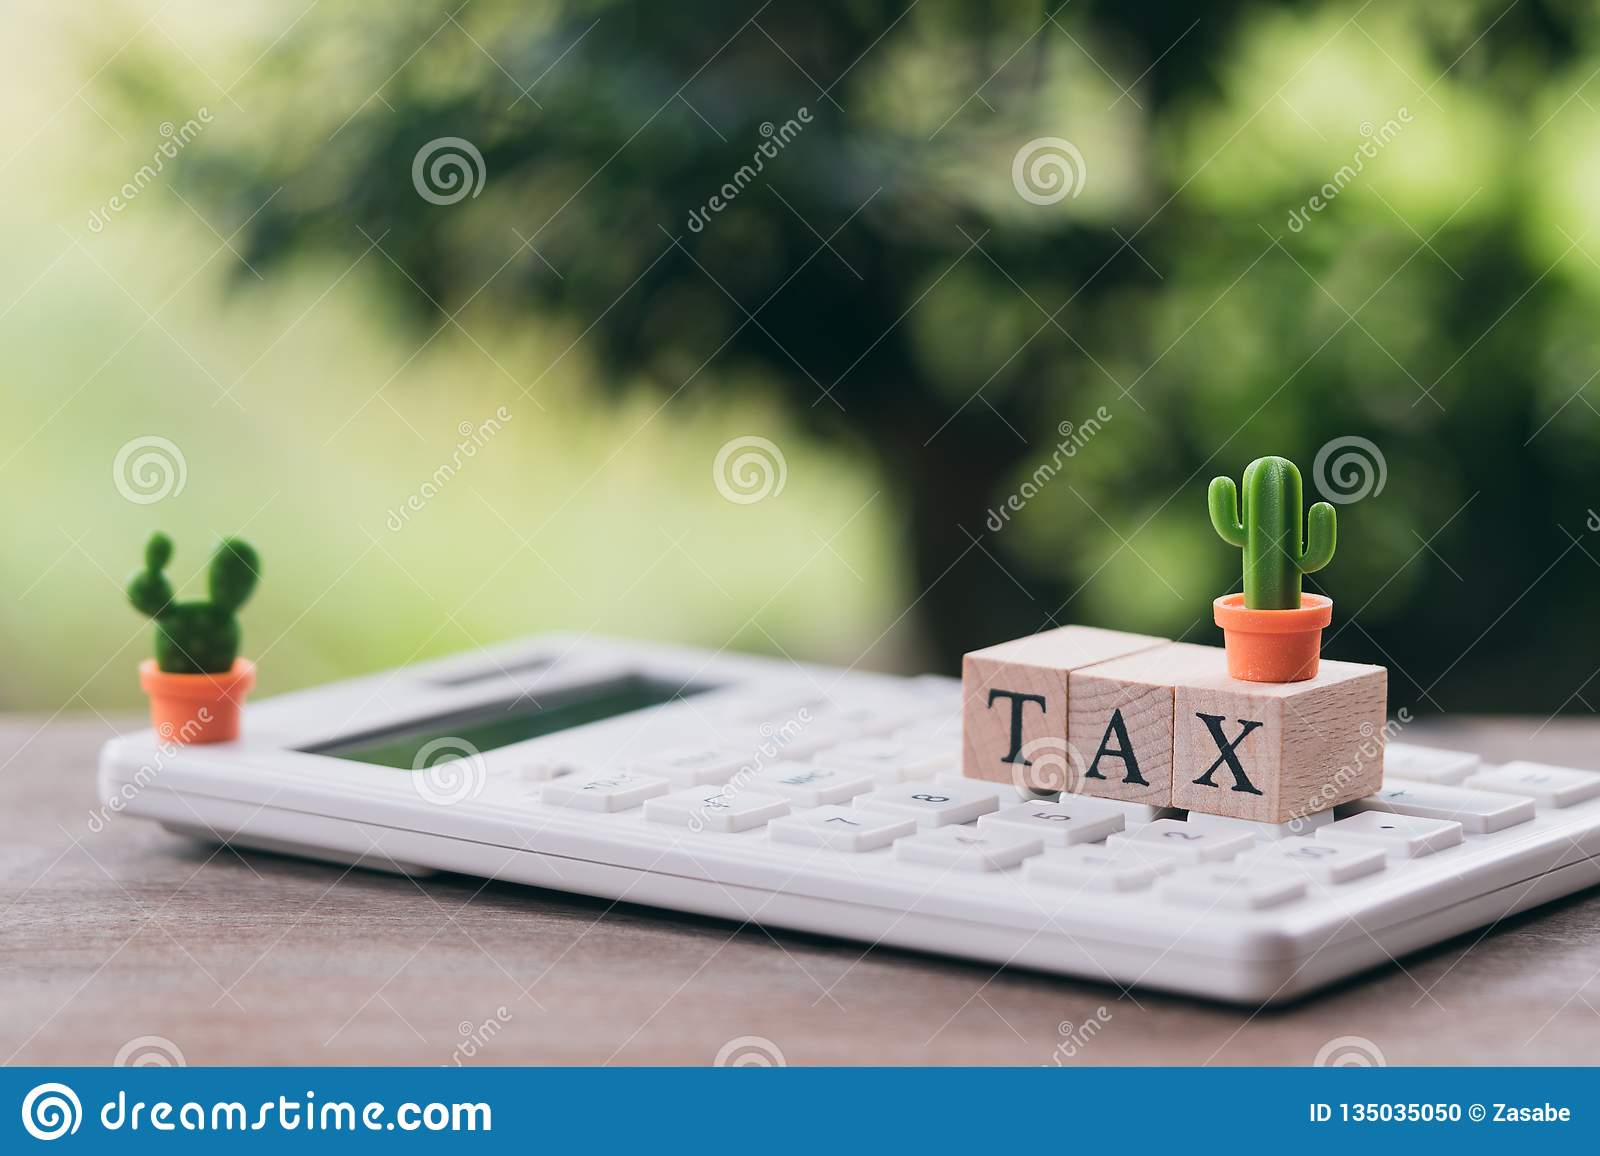 Pay Annual Income Tax For The Year On Calculator Using As